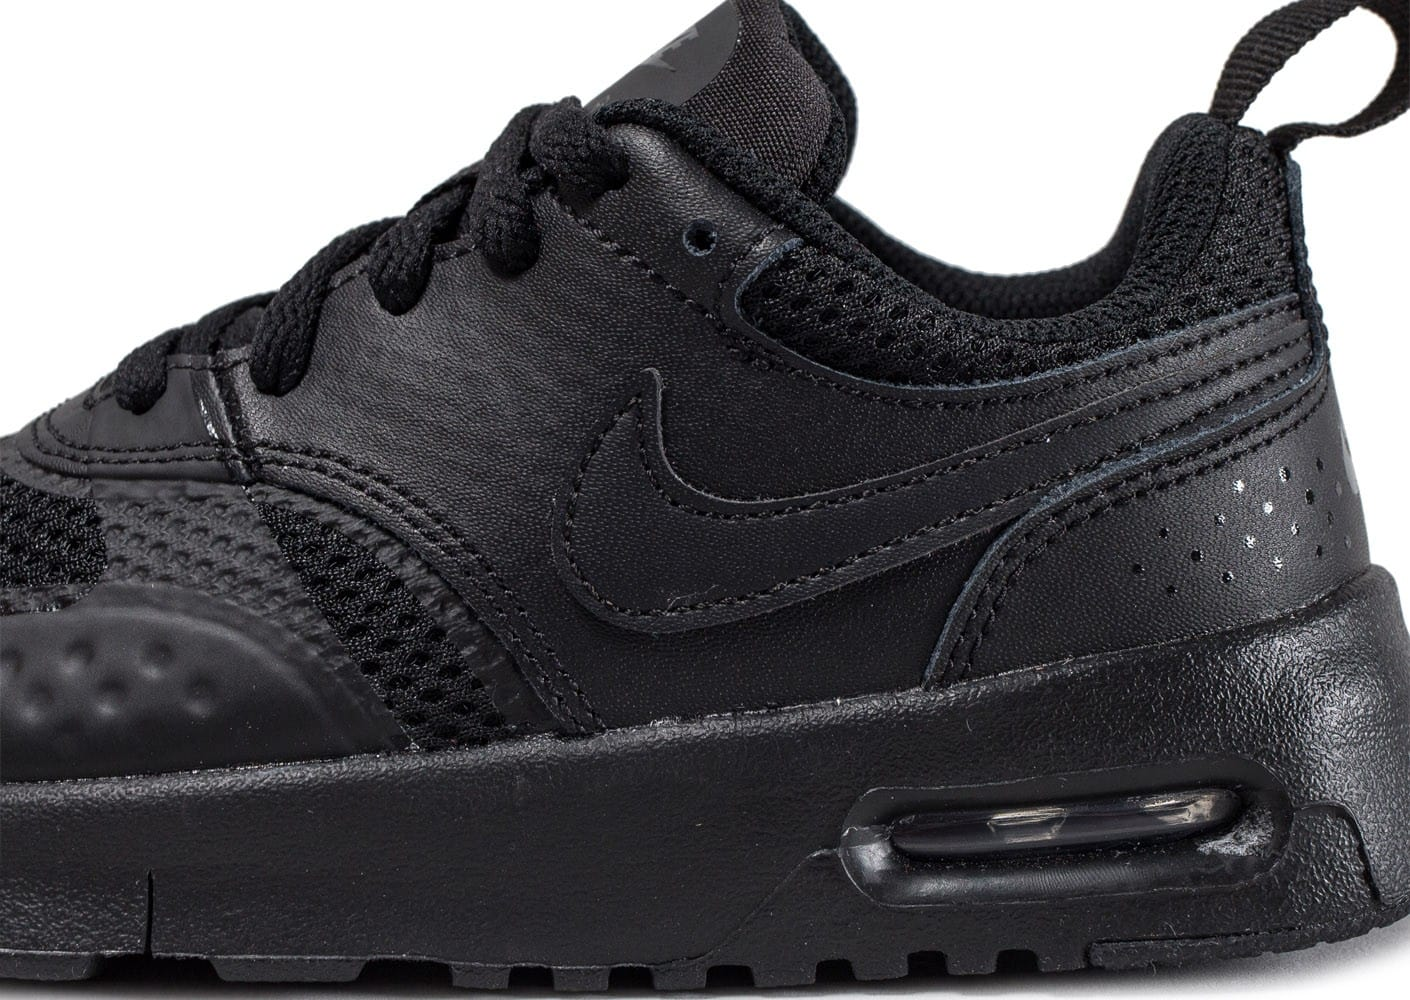 nike air max vision enfant noire chaussures black friday chausport. Black Bedroom Furniture Sets. Home Design Ideas